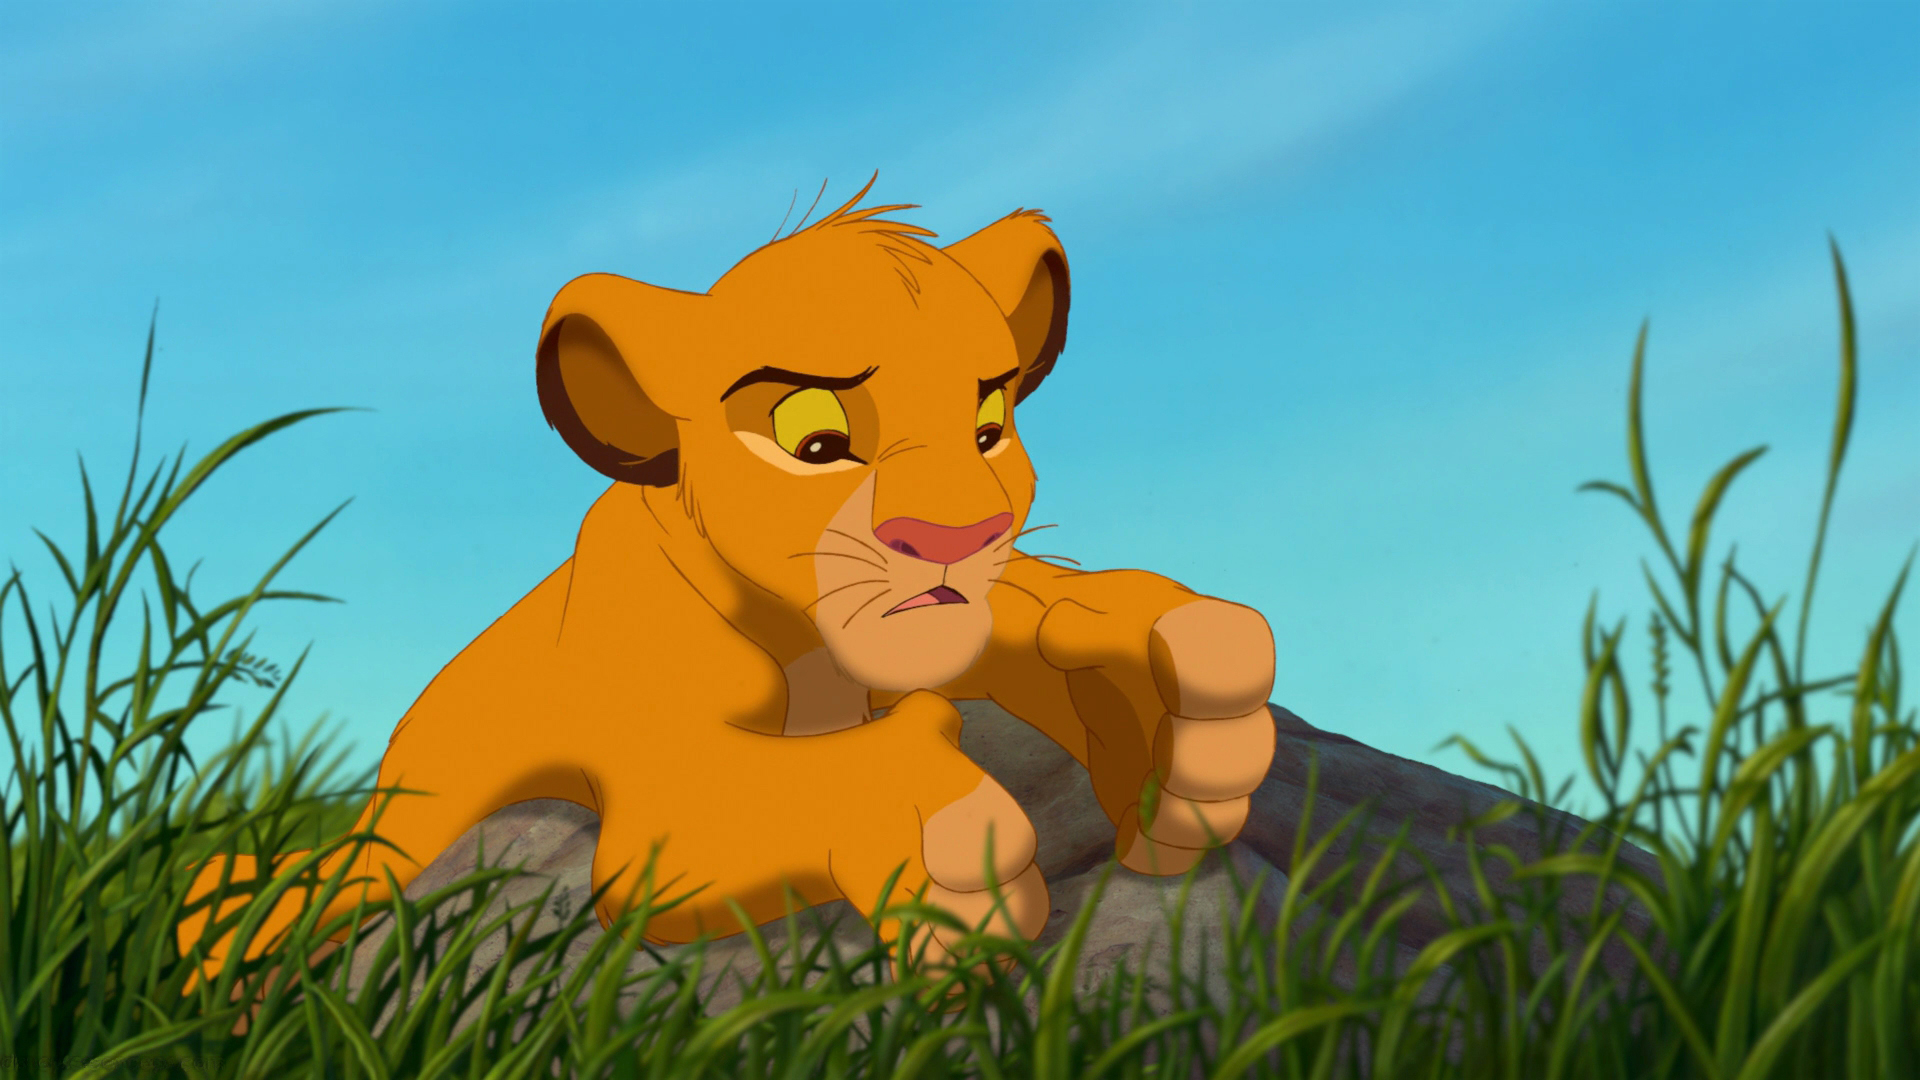 The Lion King Cartoon Adventures Of The Young Lion - Cartoon Simba The Lion King , HD Wallpaper & Backgrounds